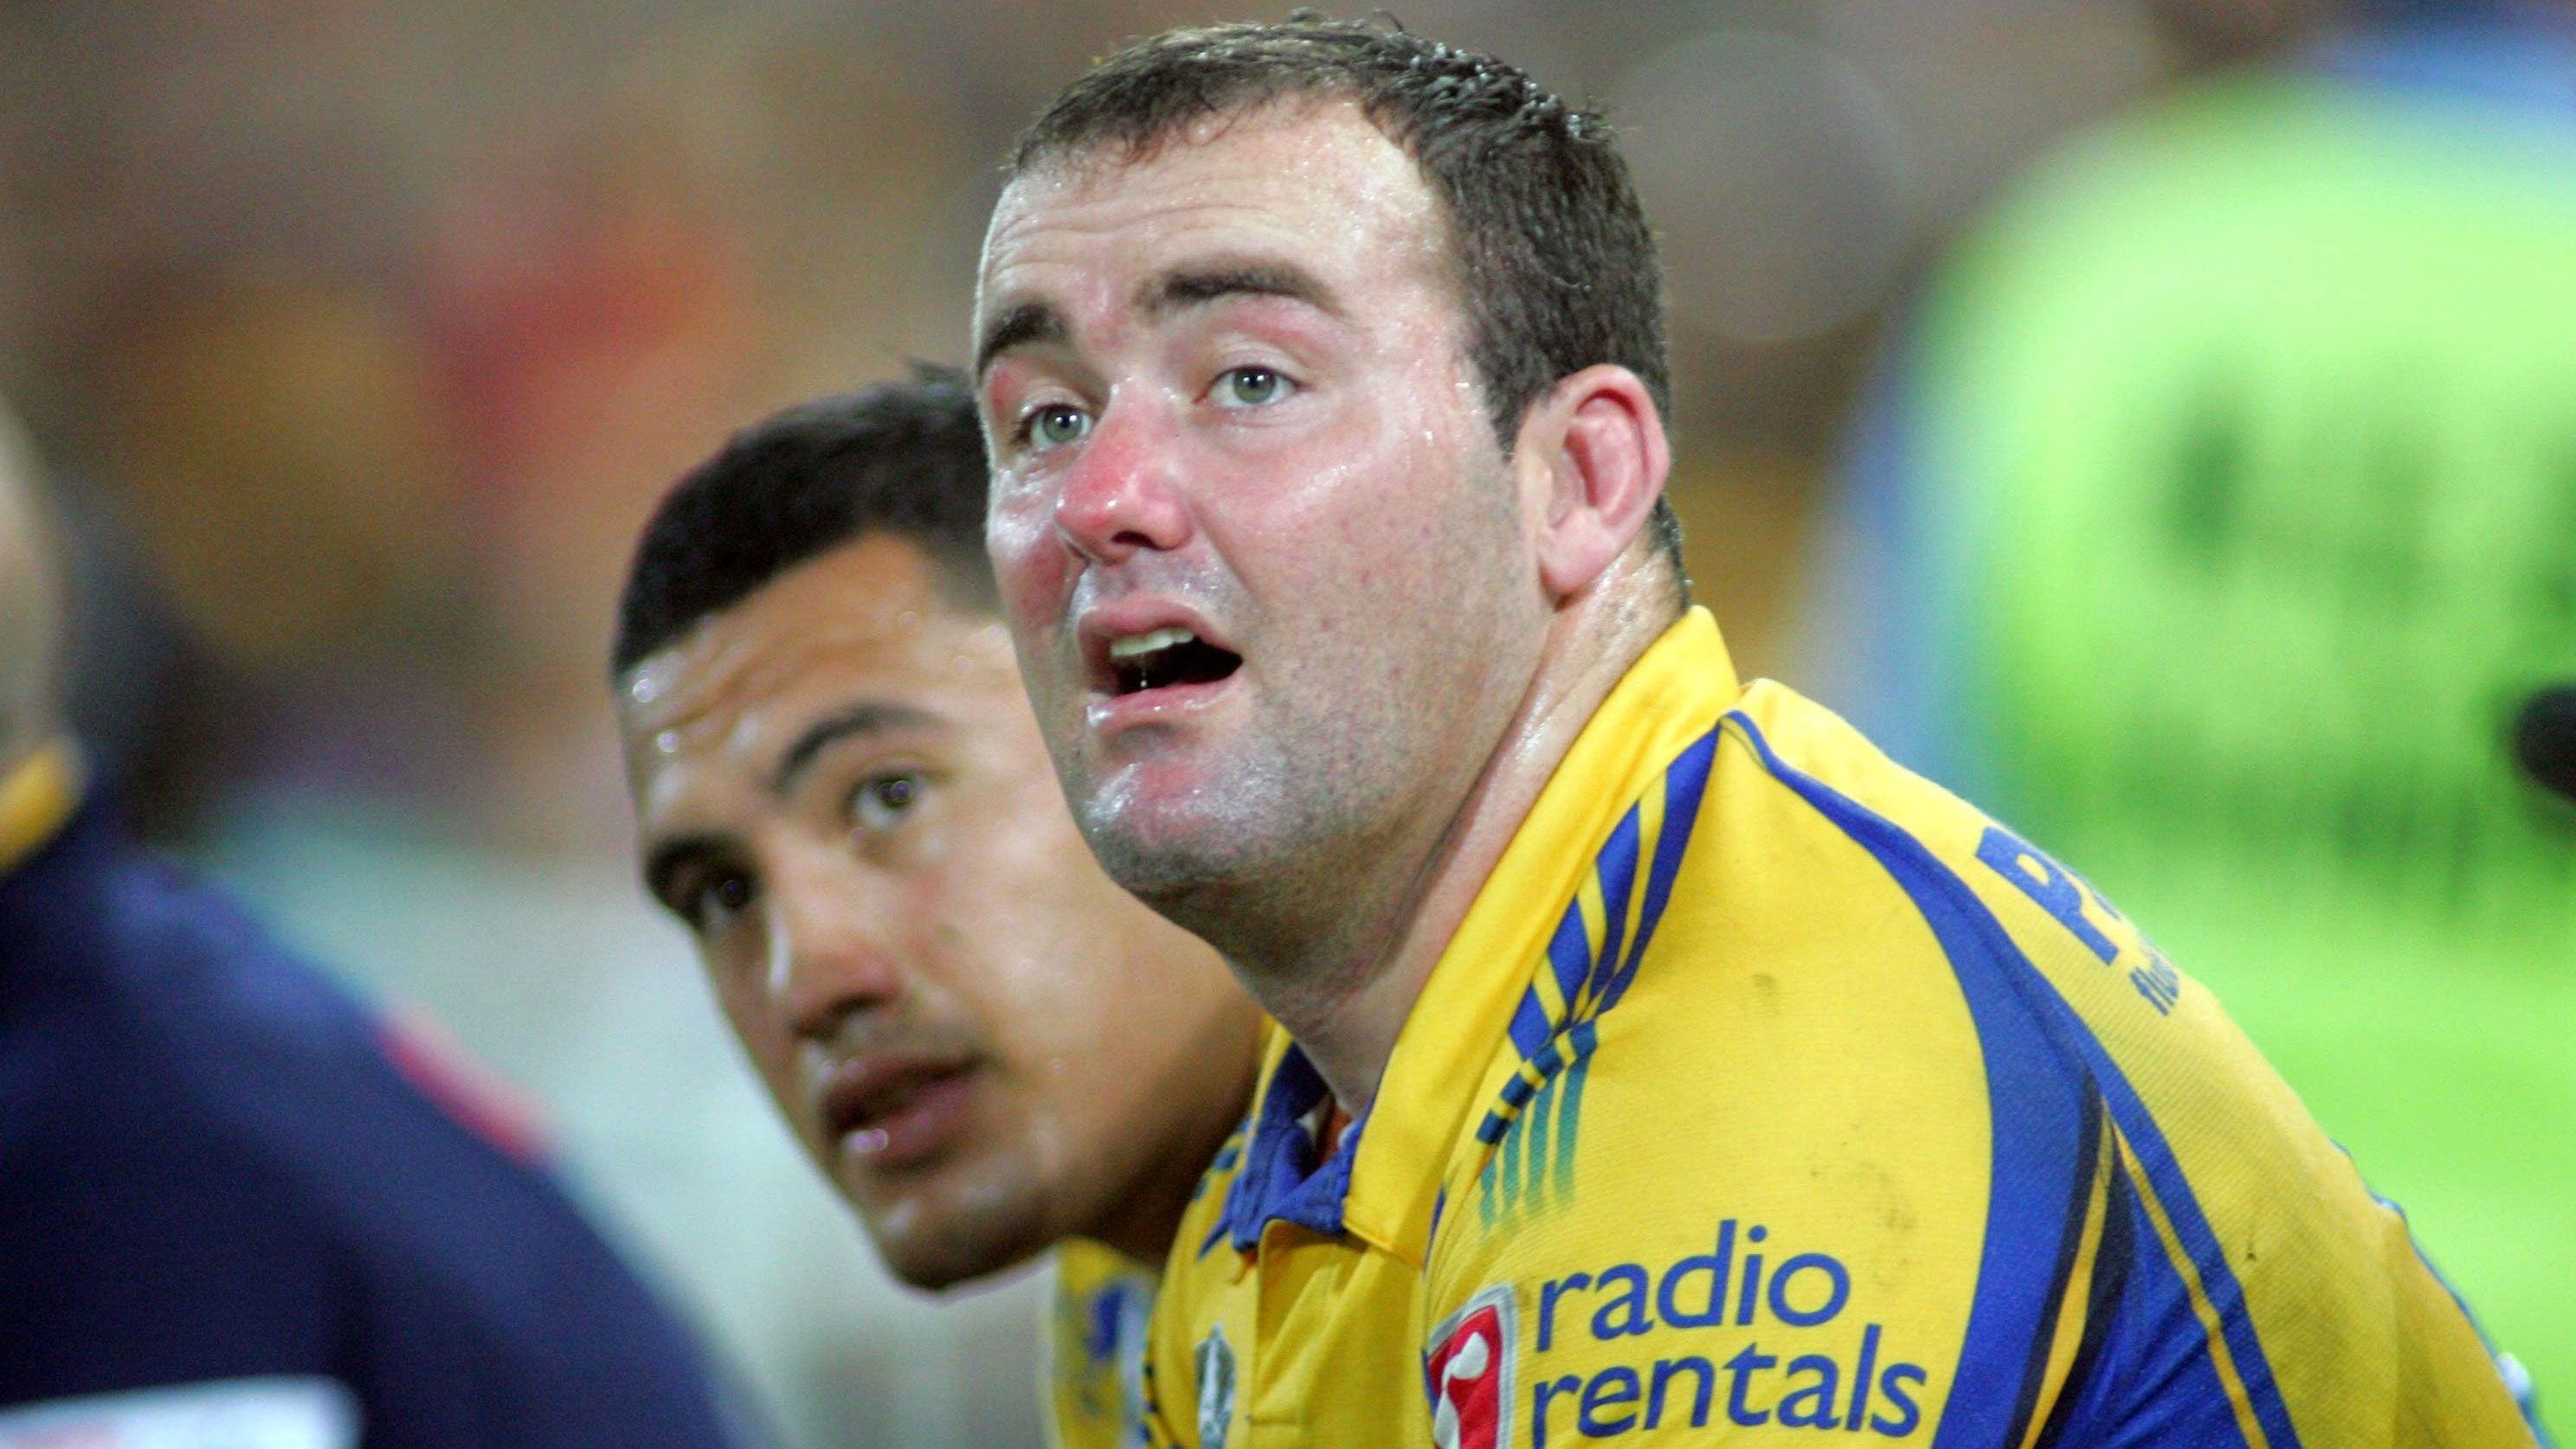 Mark Riddell admits to lying about his age during rugby league career